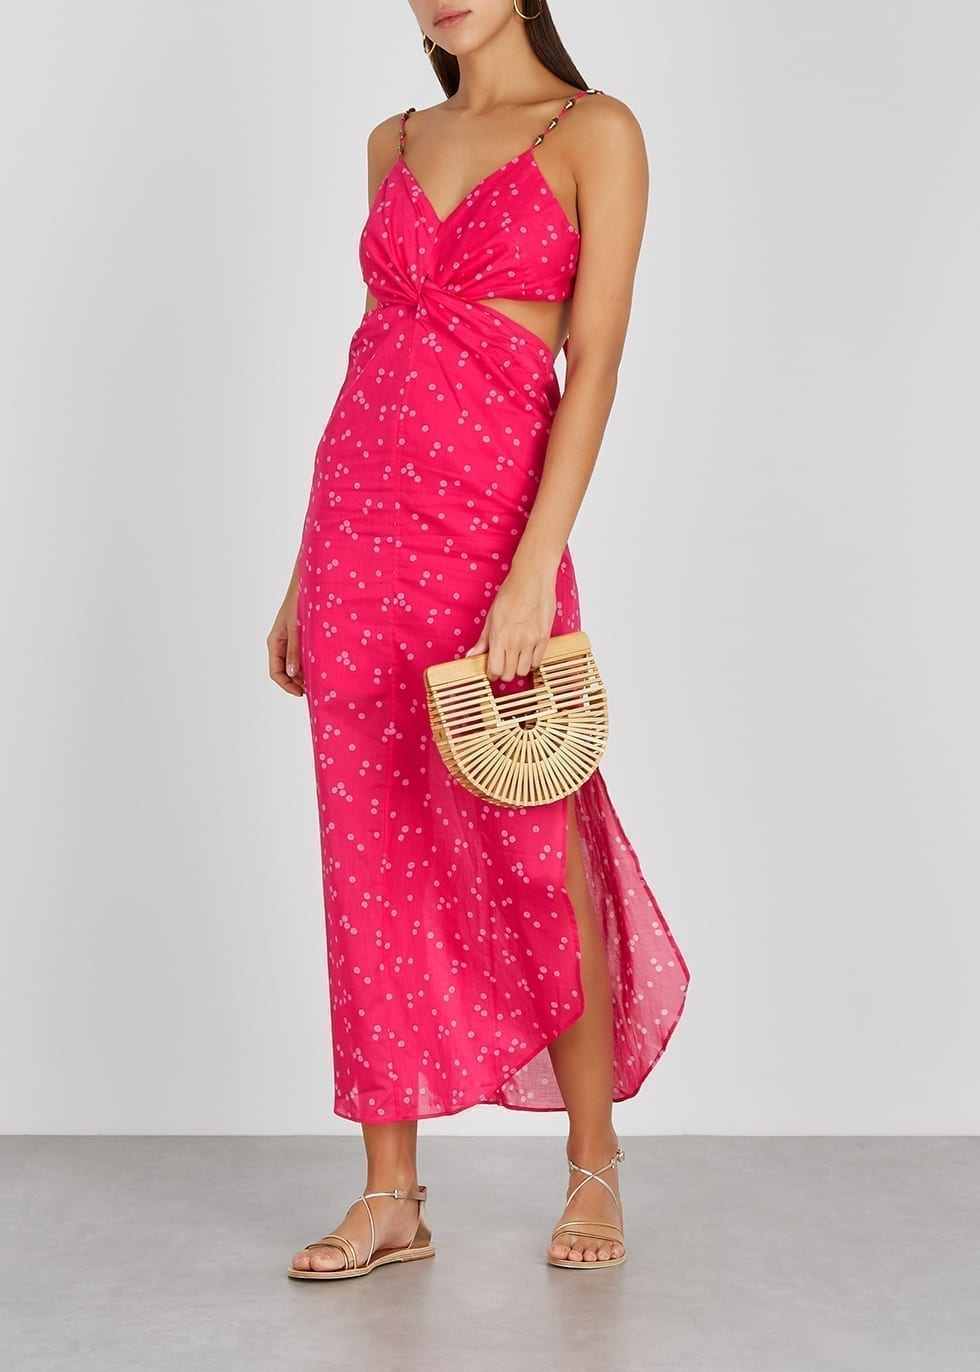 V I X PAULA HERMANNY Briditte Polka-dot Cotton Maxi Dress